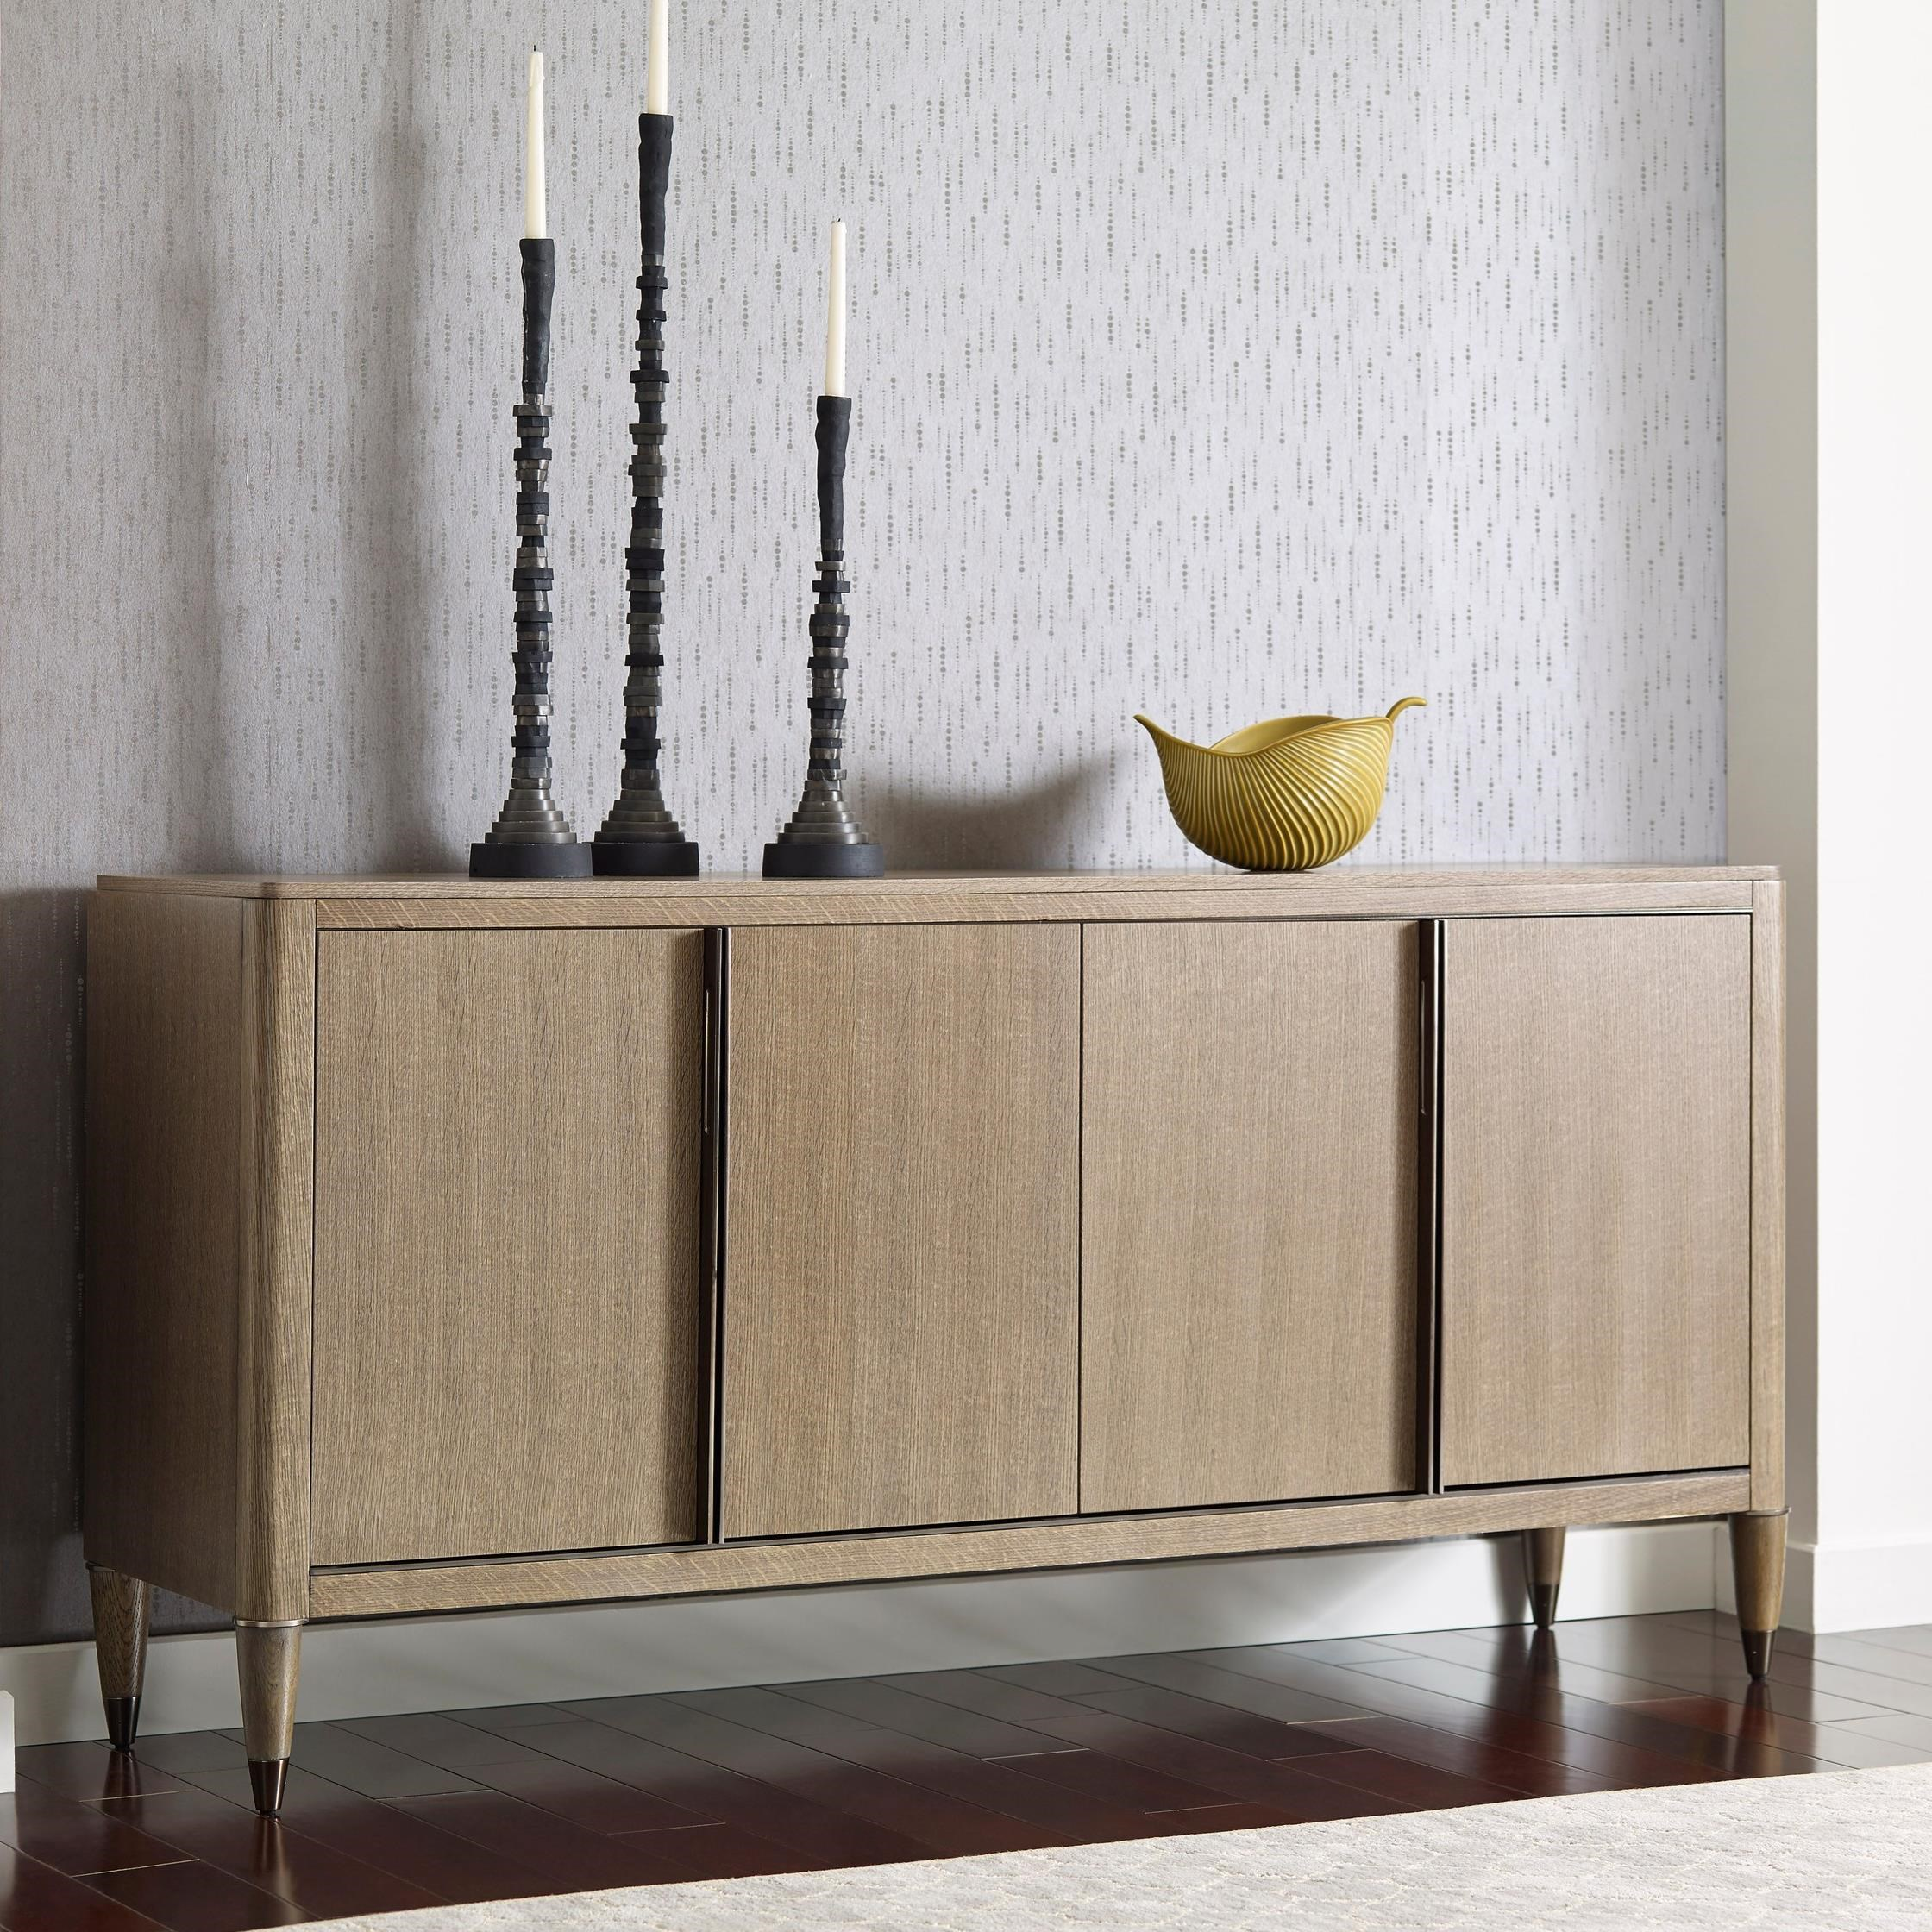 American Drew Ad Modern Classics Darby Credenza - Item Number: 603-858